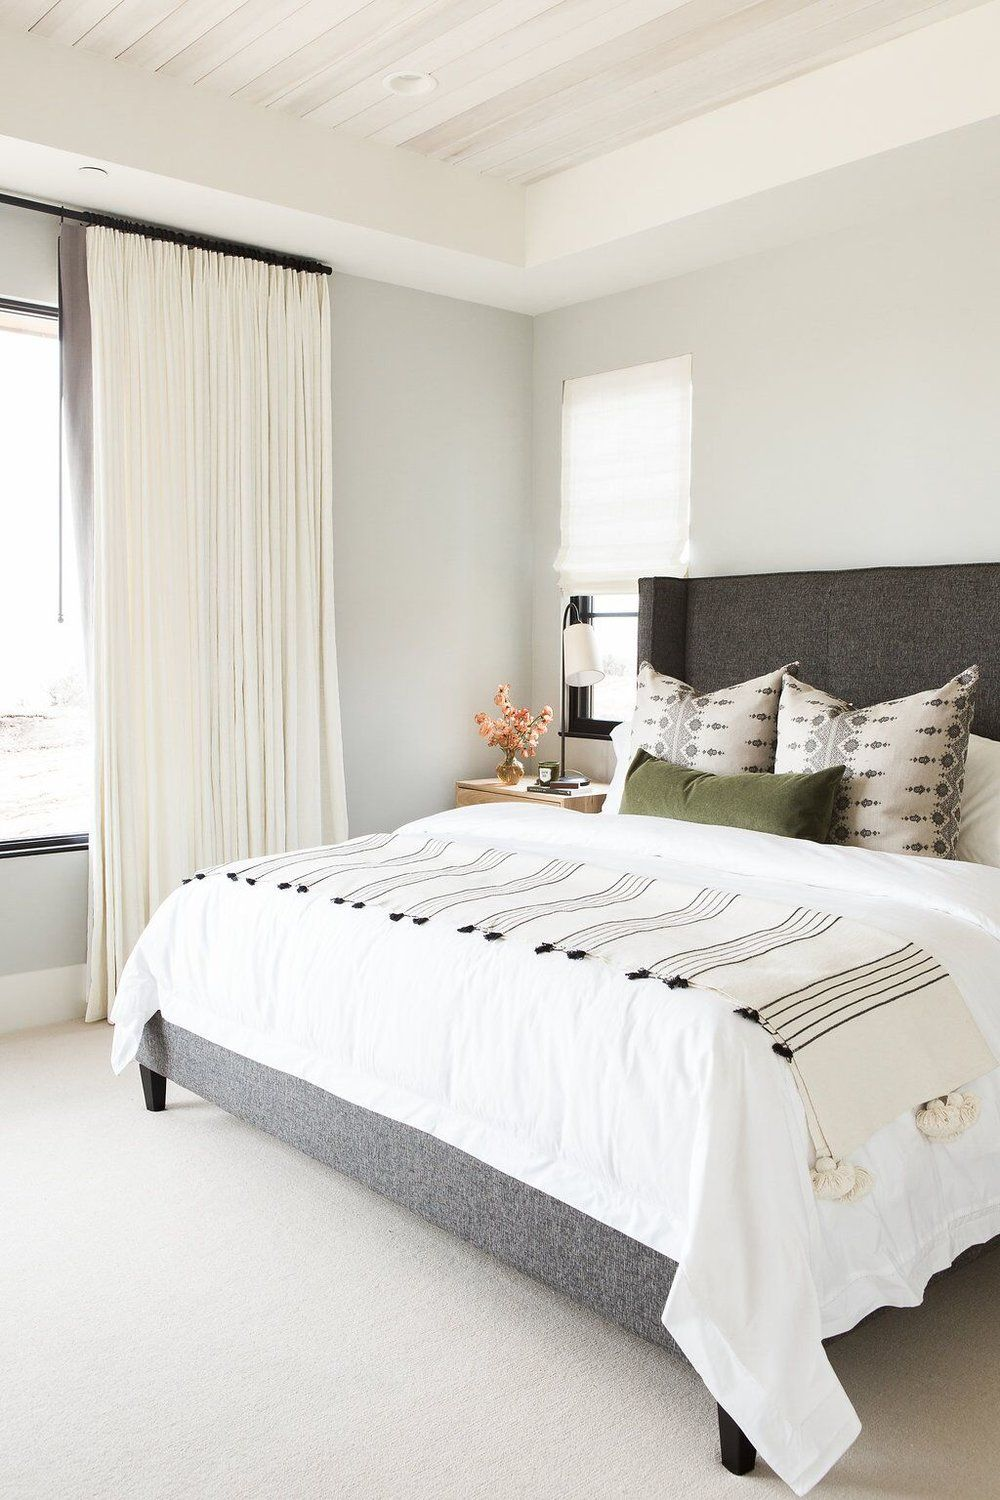 Design Tips For Carpet And Rugs  Studio Mcgee Bedrooms And Rug Unique Carpet Bedrooms Review